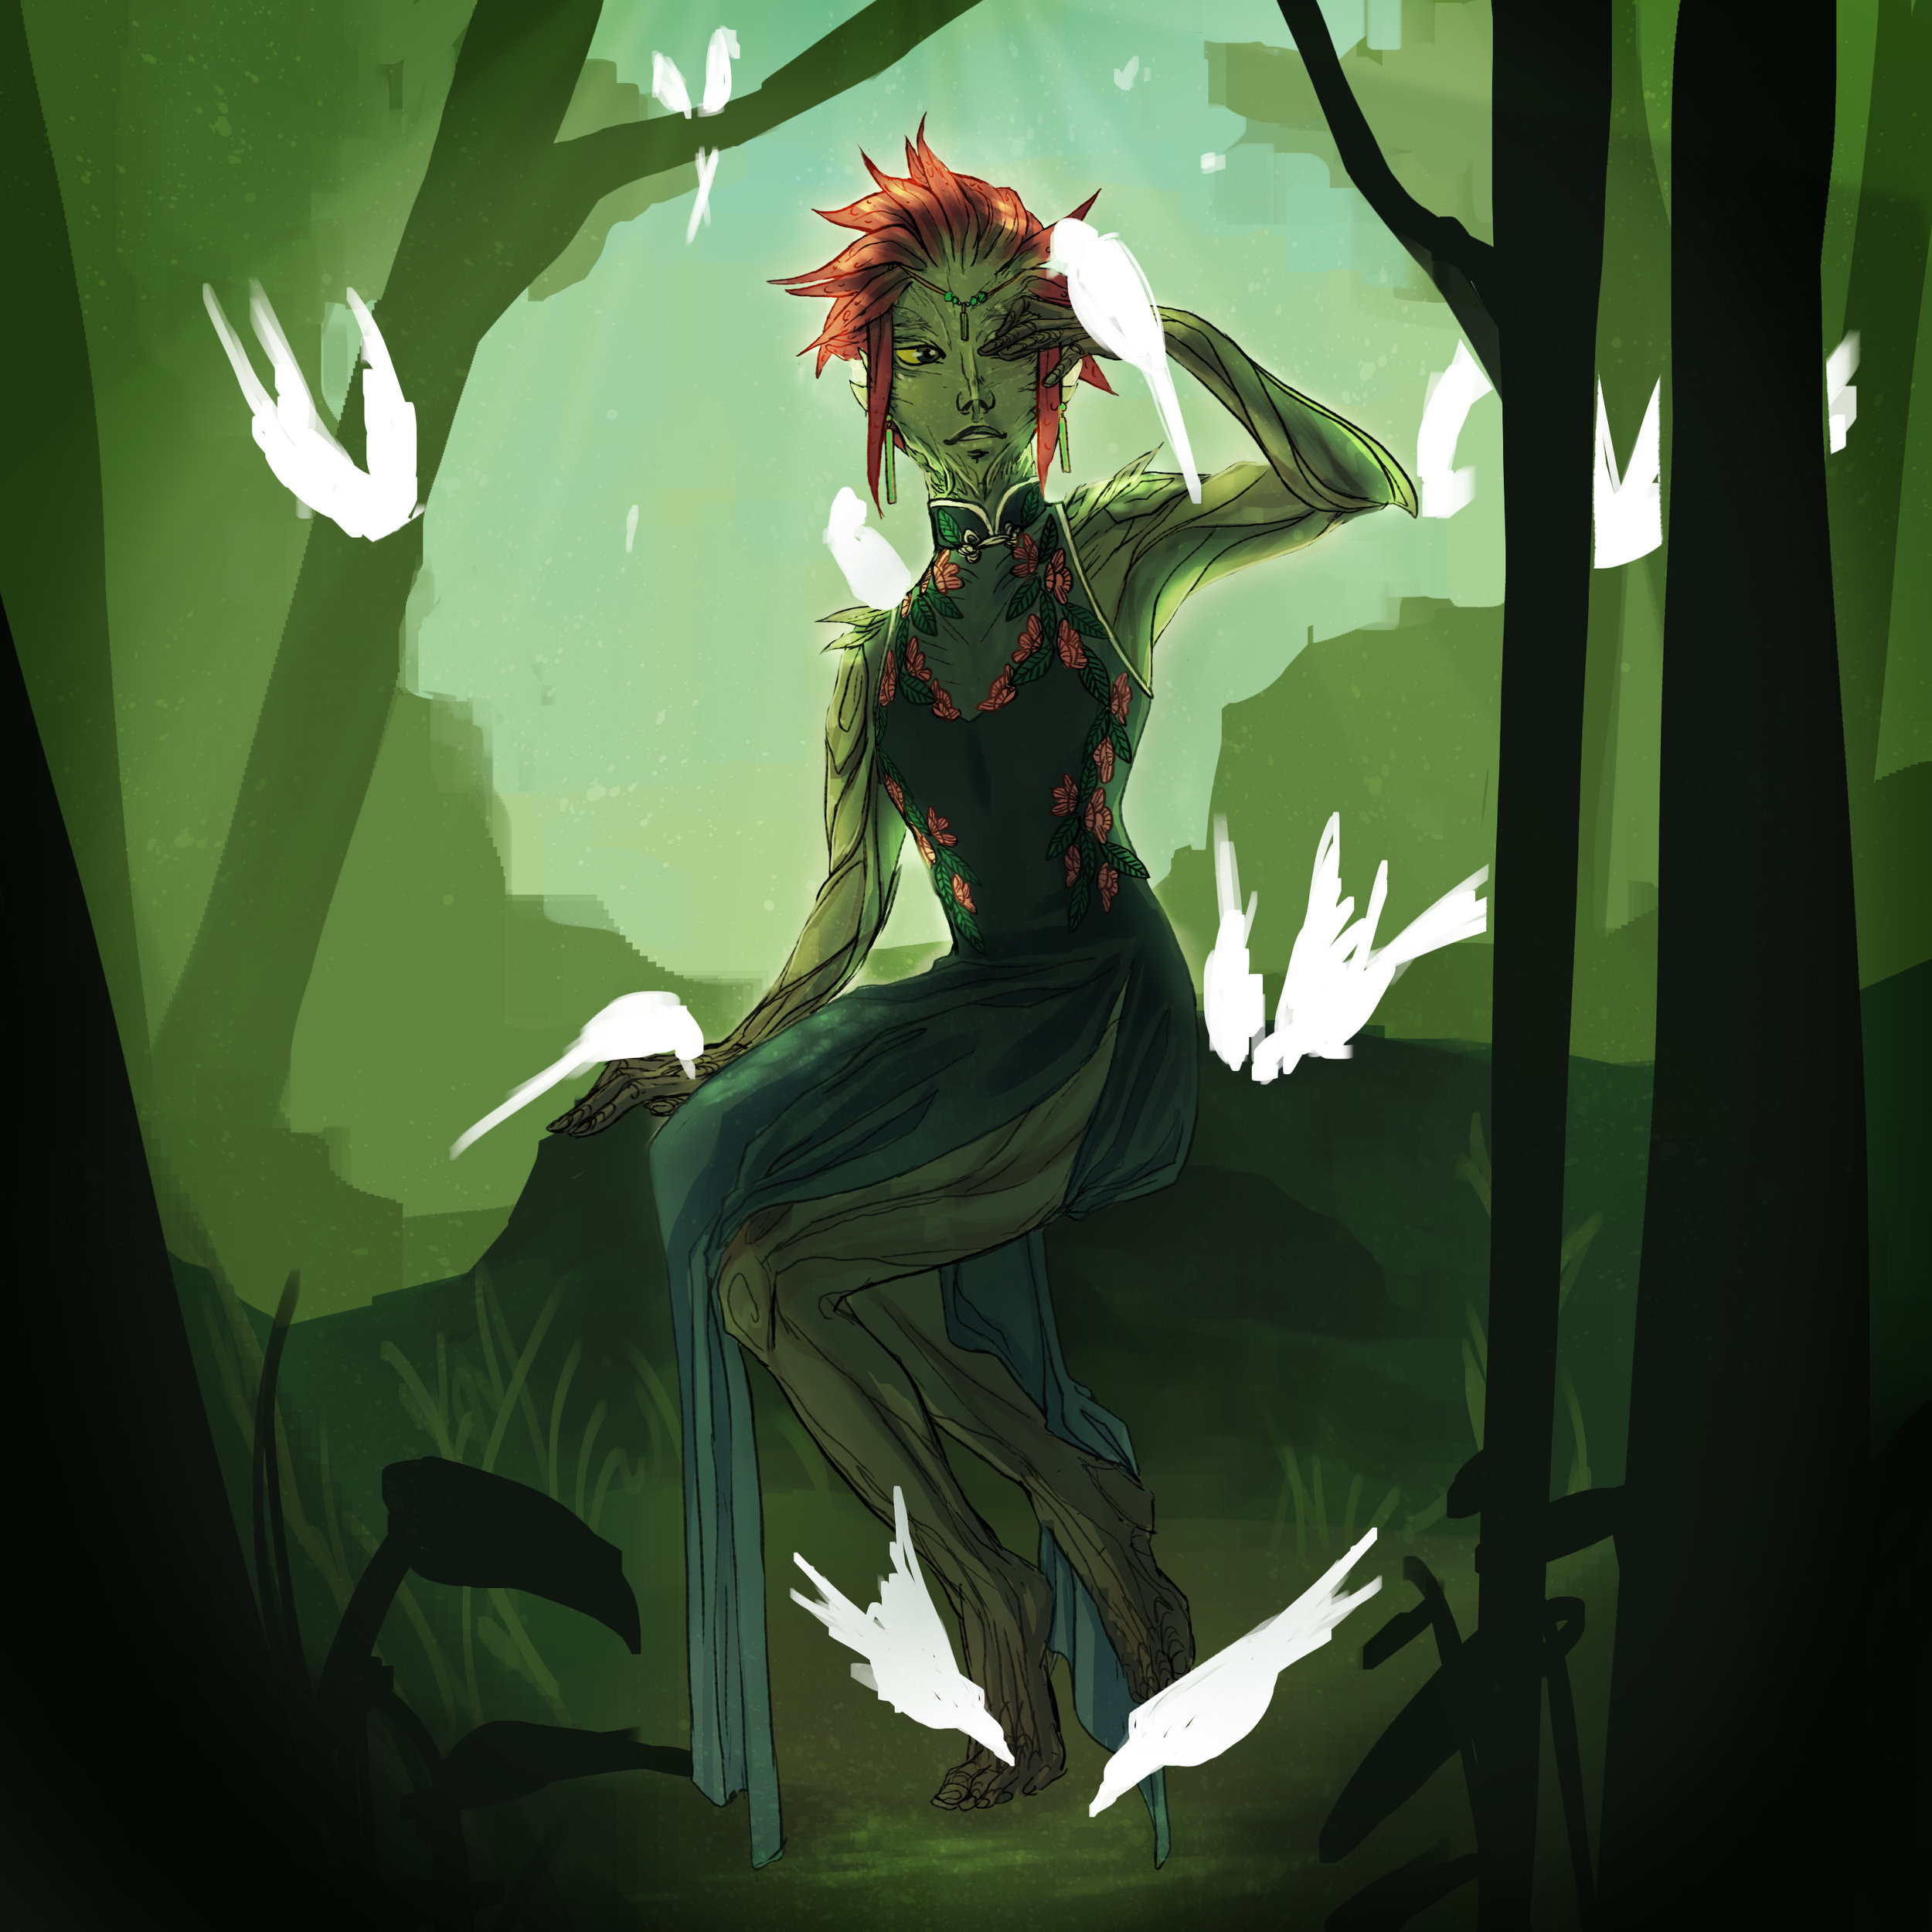 Photoshop drawing of Guild Wars 2 video game character